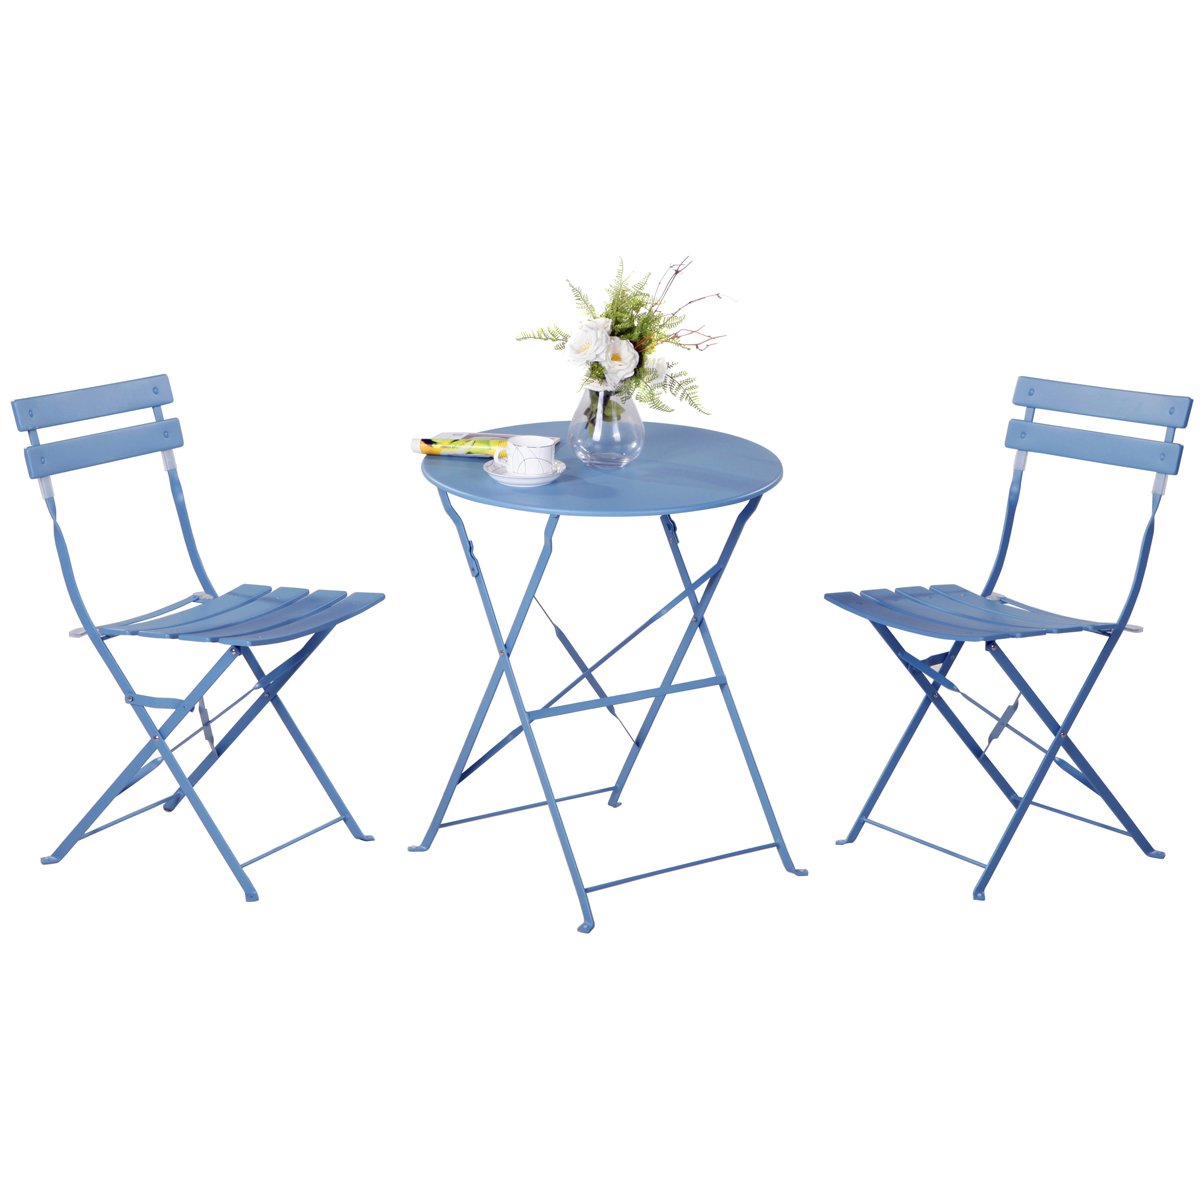 Grand Patio Premium Steel Patio Bistro Set, Folding Outdoor Patio Furniture Sets, 3 Piece Patio Set of Foldable Patio Table and Chairs, Blue by Grand patio